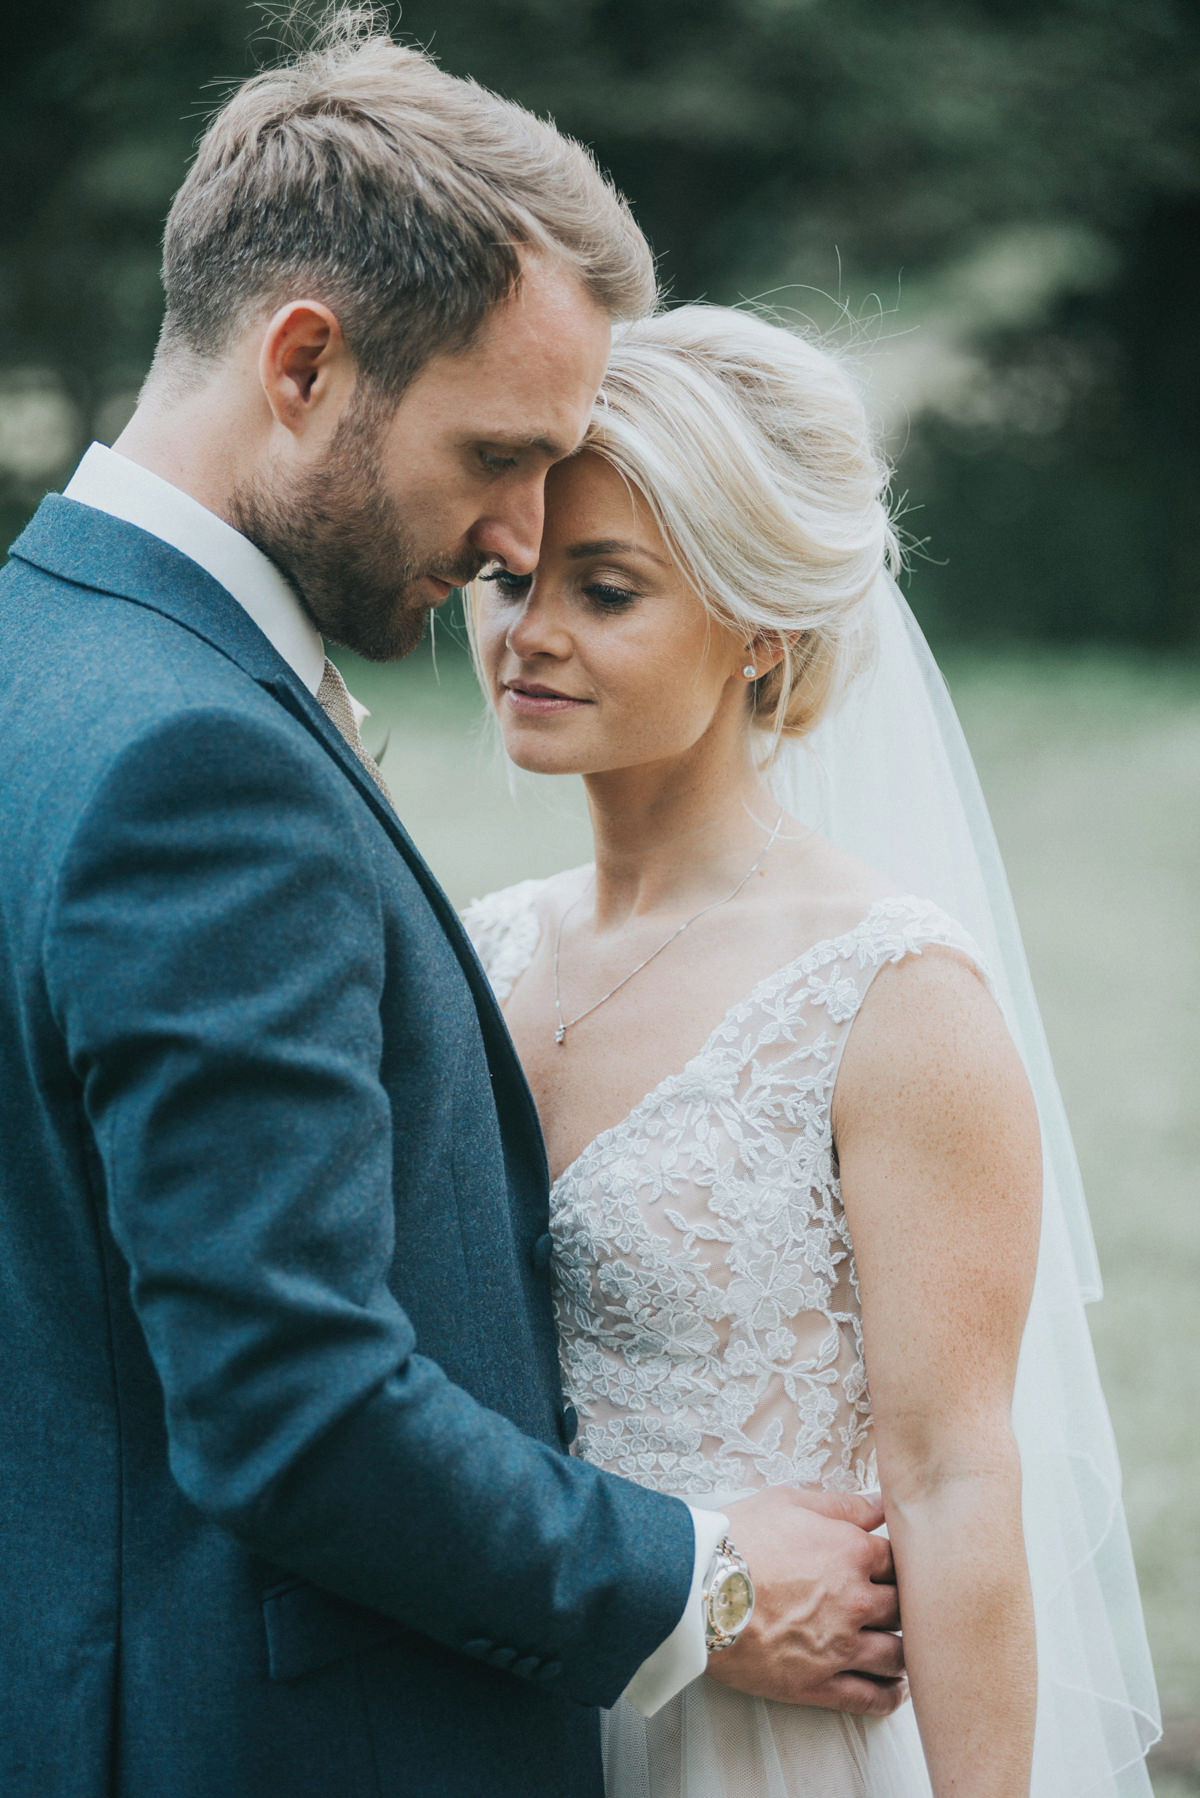 An Elegant Watters Gown for a Pared Back and Neutral September Wedding